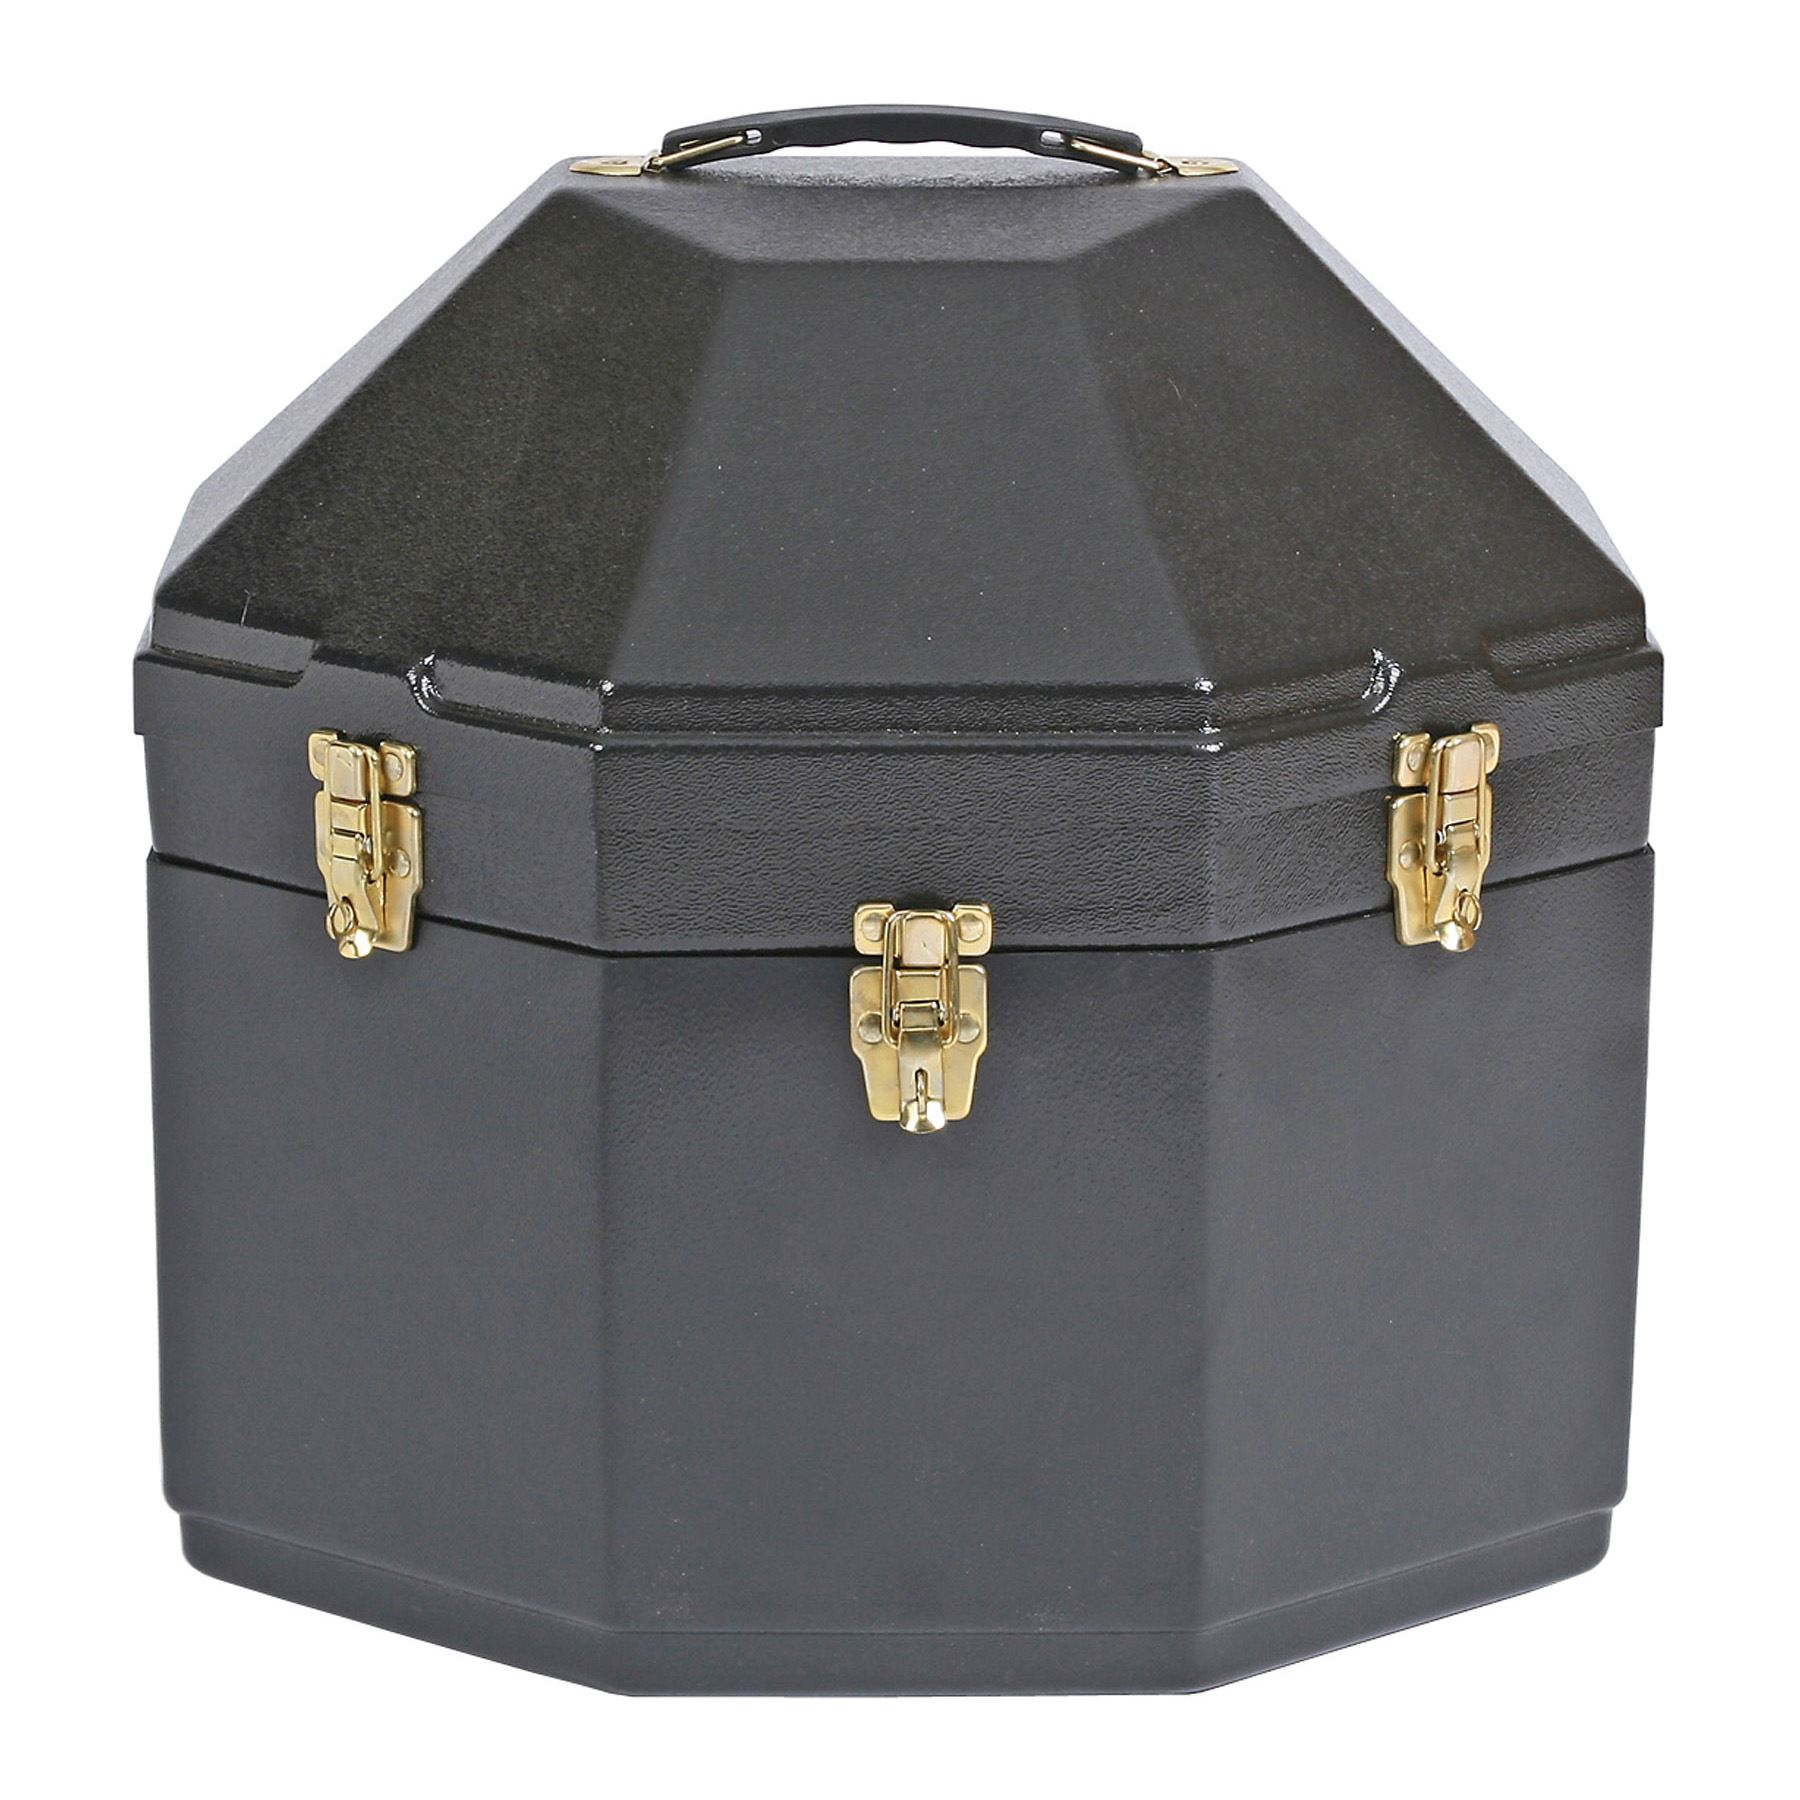 Superbe Western Hat Storage Box Hd Image Ukjugs